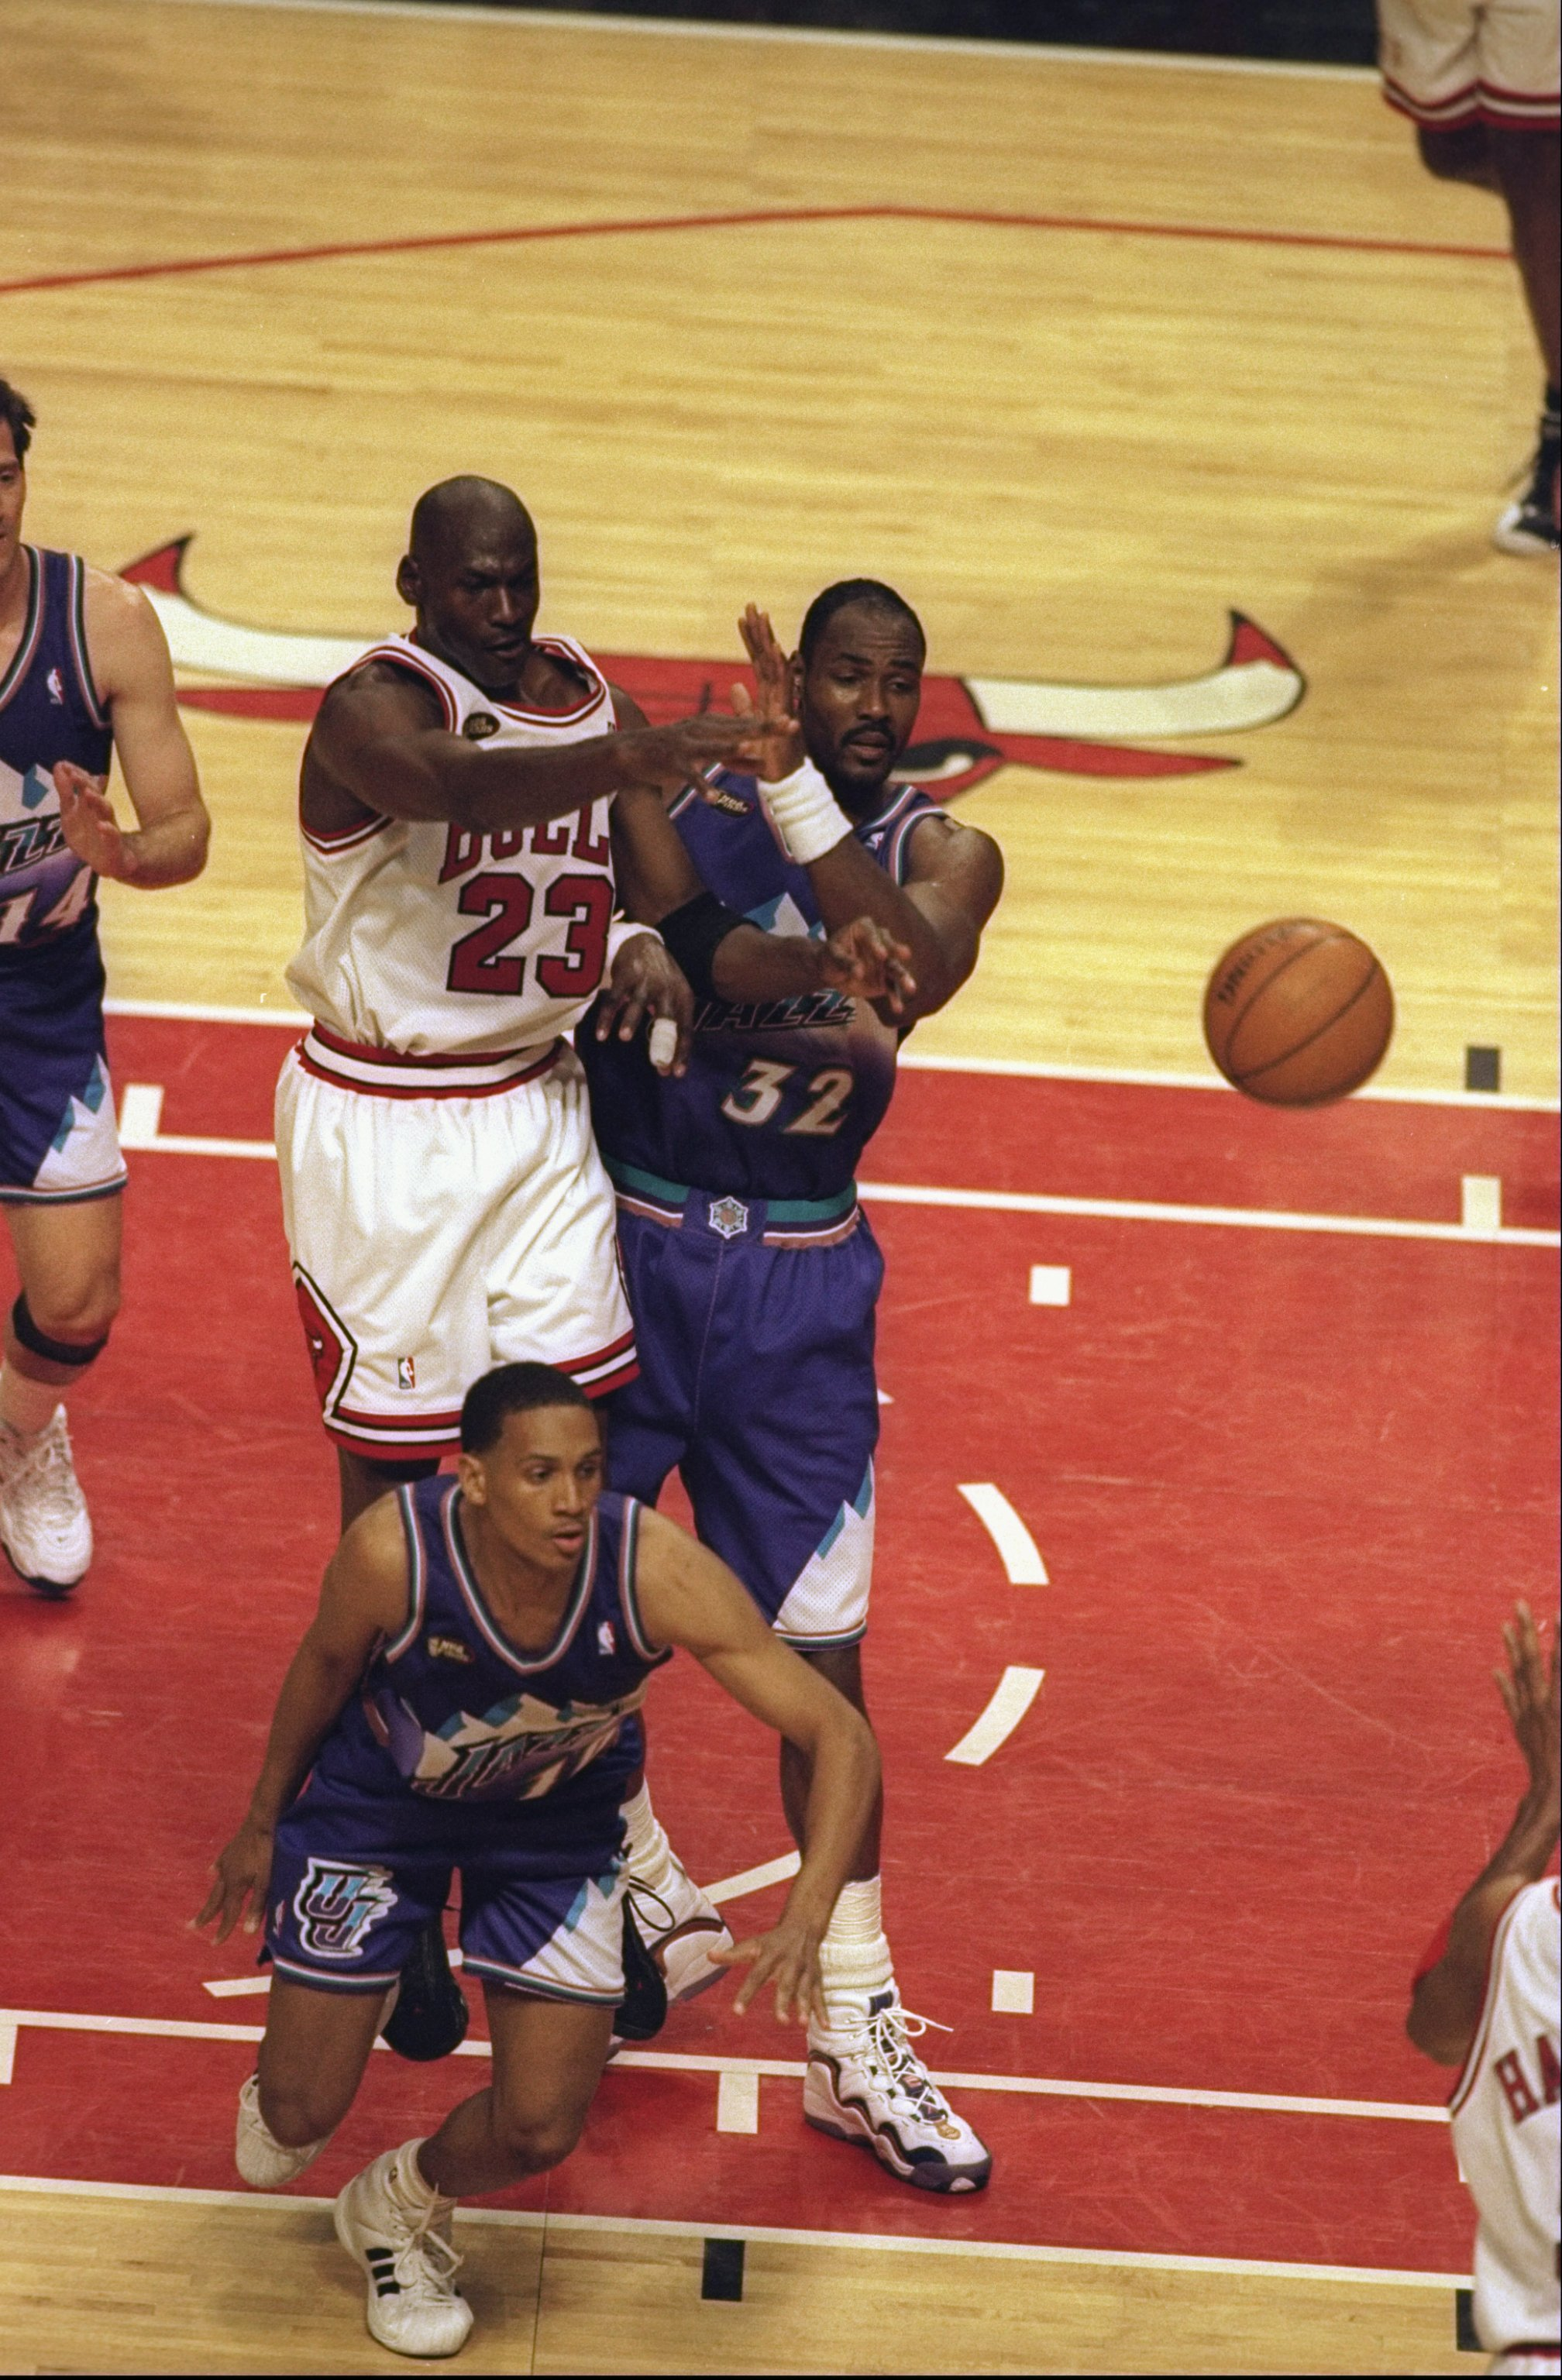 7 Jun 1998:  Michael Jordan #23 of the Chicago Bulls passes the ball to Ron Harper #9 for the easy lay up instead of taking the shot as Karl Malone #32 of the Utah Jazz comes to block him from the shot during the NBA Finals game 3 at the United Center in